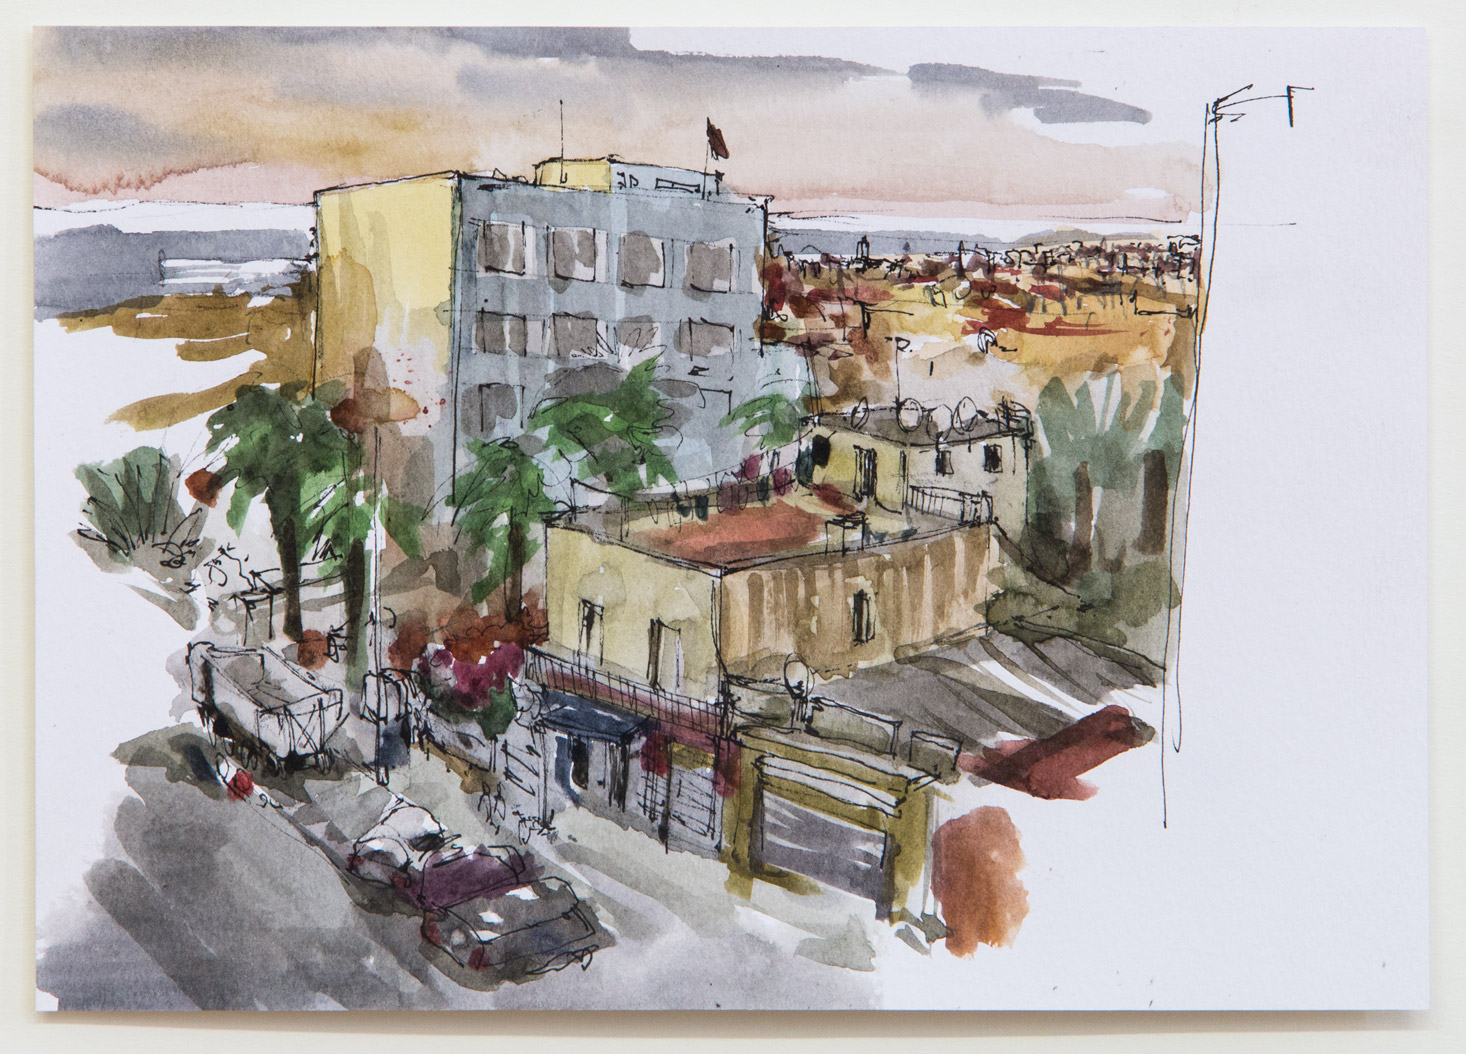 Rabat; 21 x 15 cm; watercolour, ink and pencil on paper; 2018